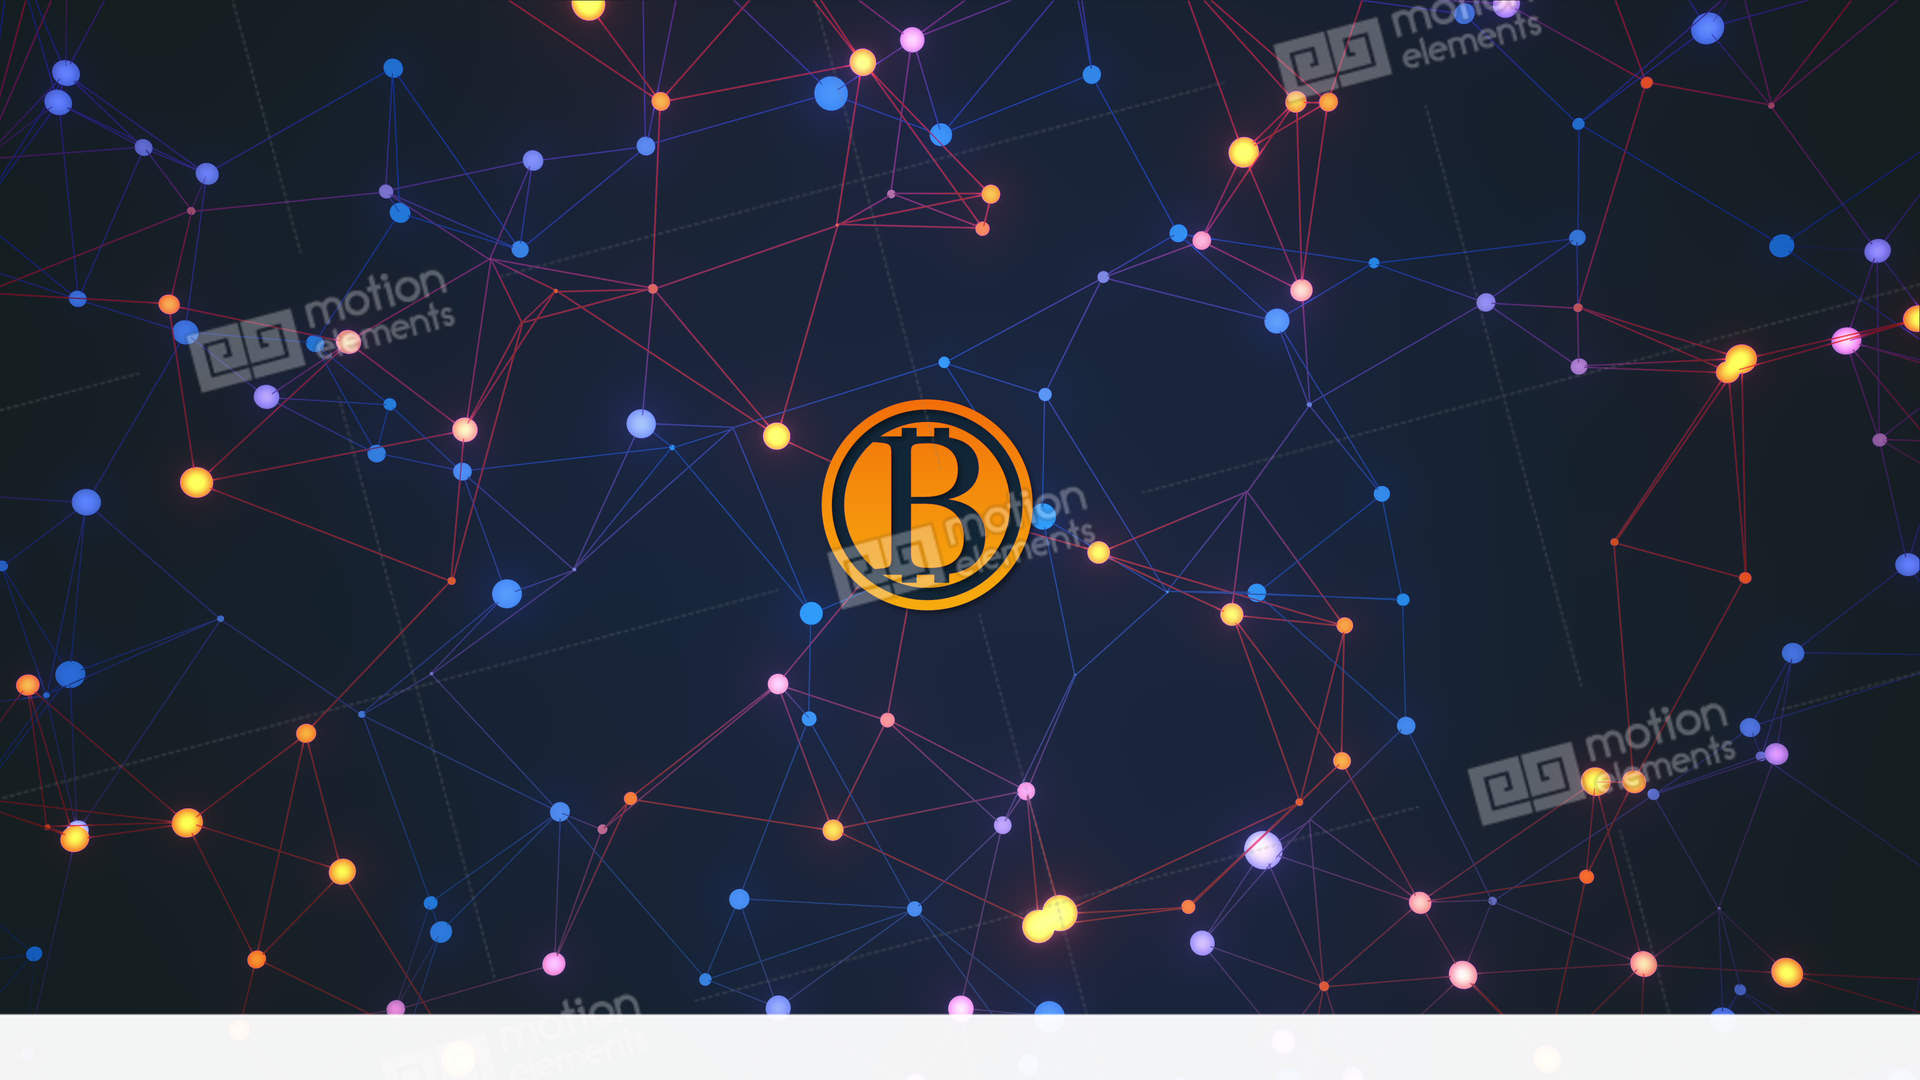 Bitcoin Transactions Conceptual Loopable Animation Stock video footage   11089208